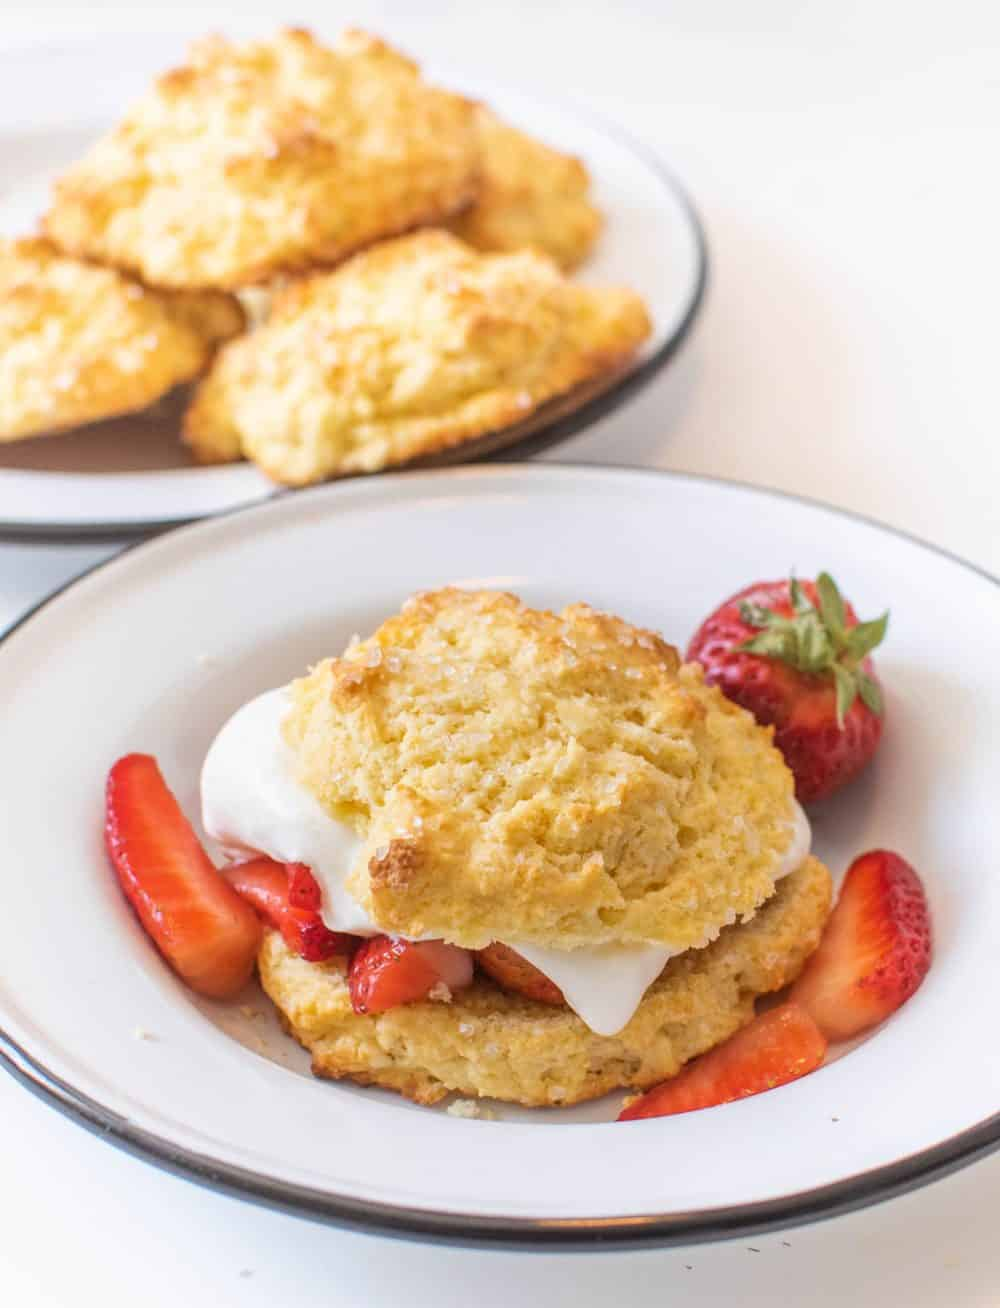 Biscuits for Strawberry Shortcake